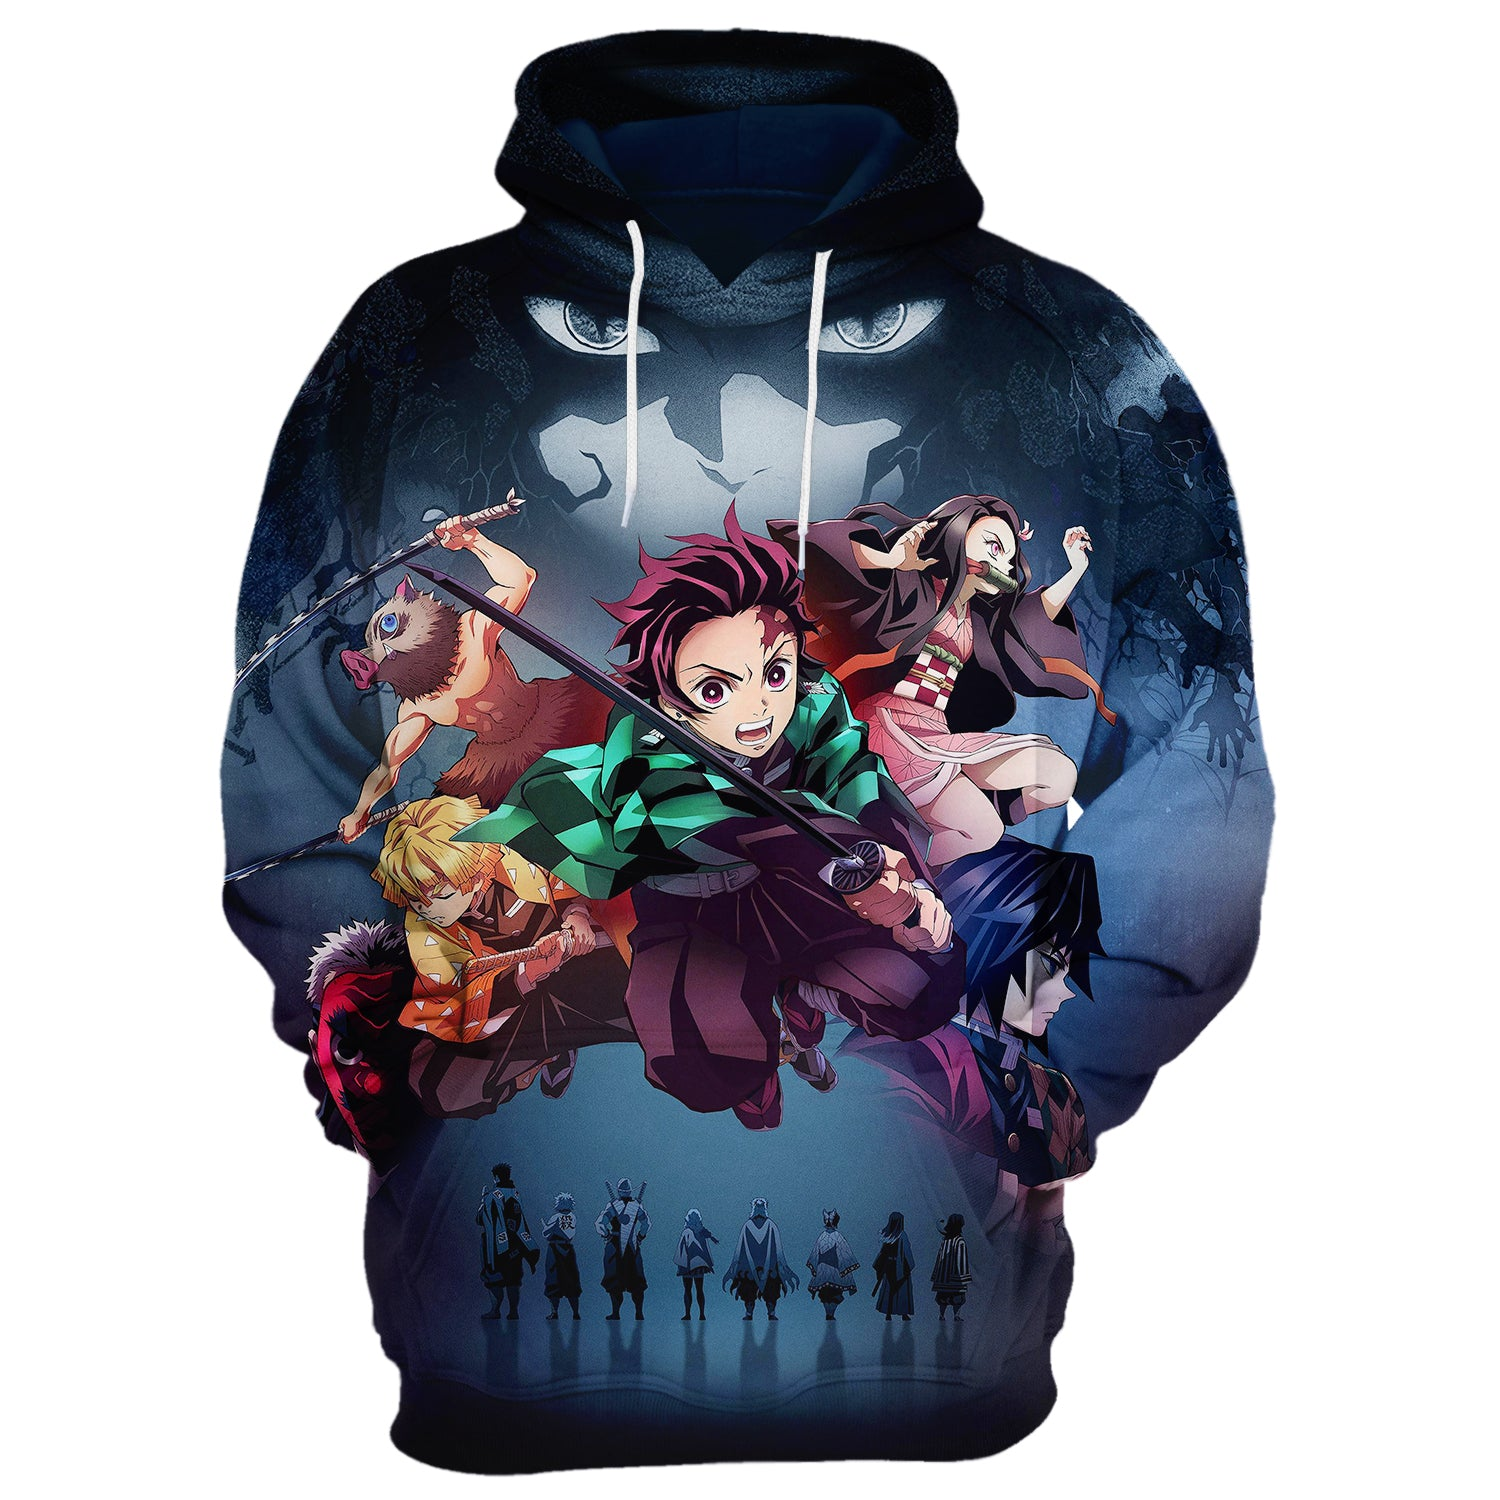 Demon Slayer Limited Edition Hoodies & Tees